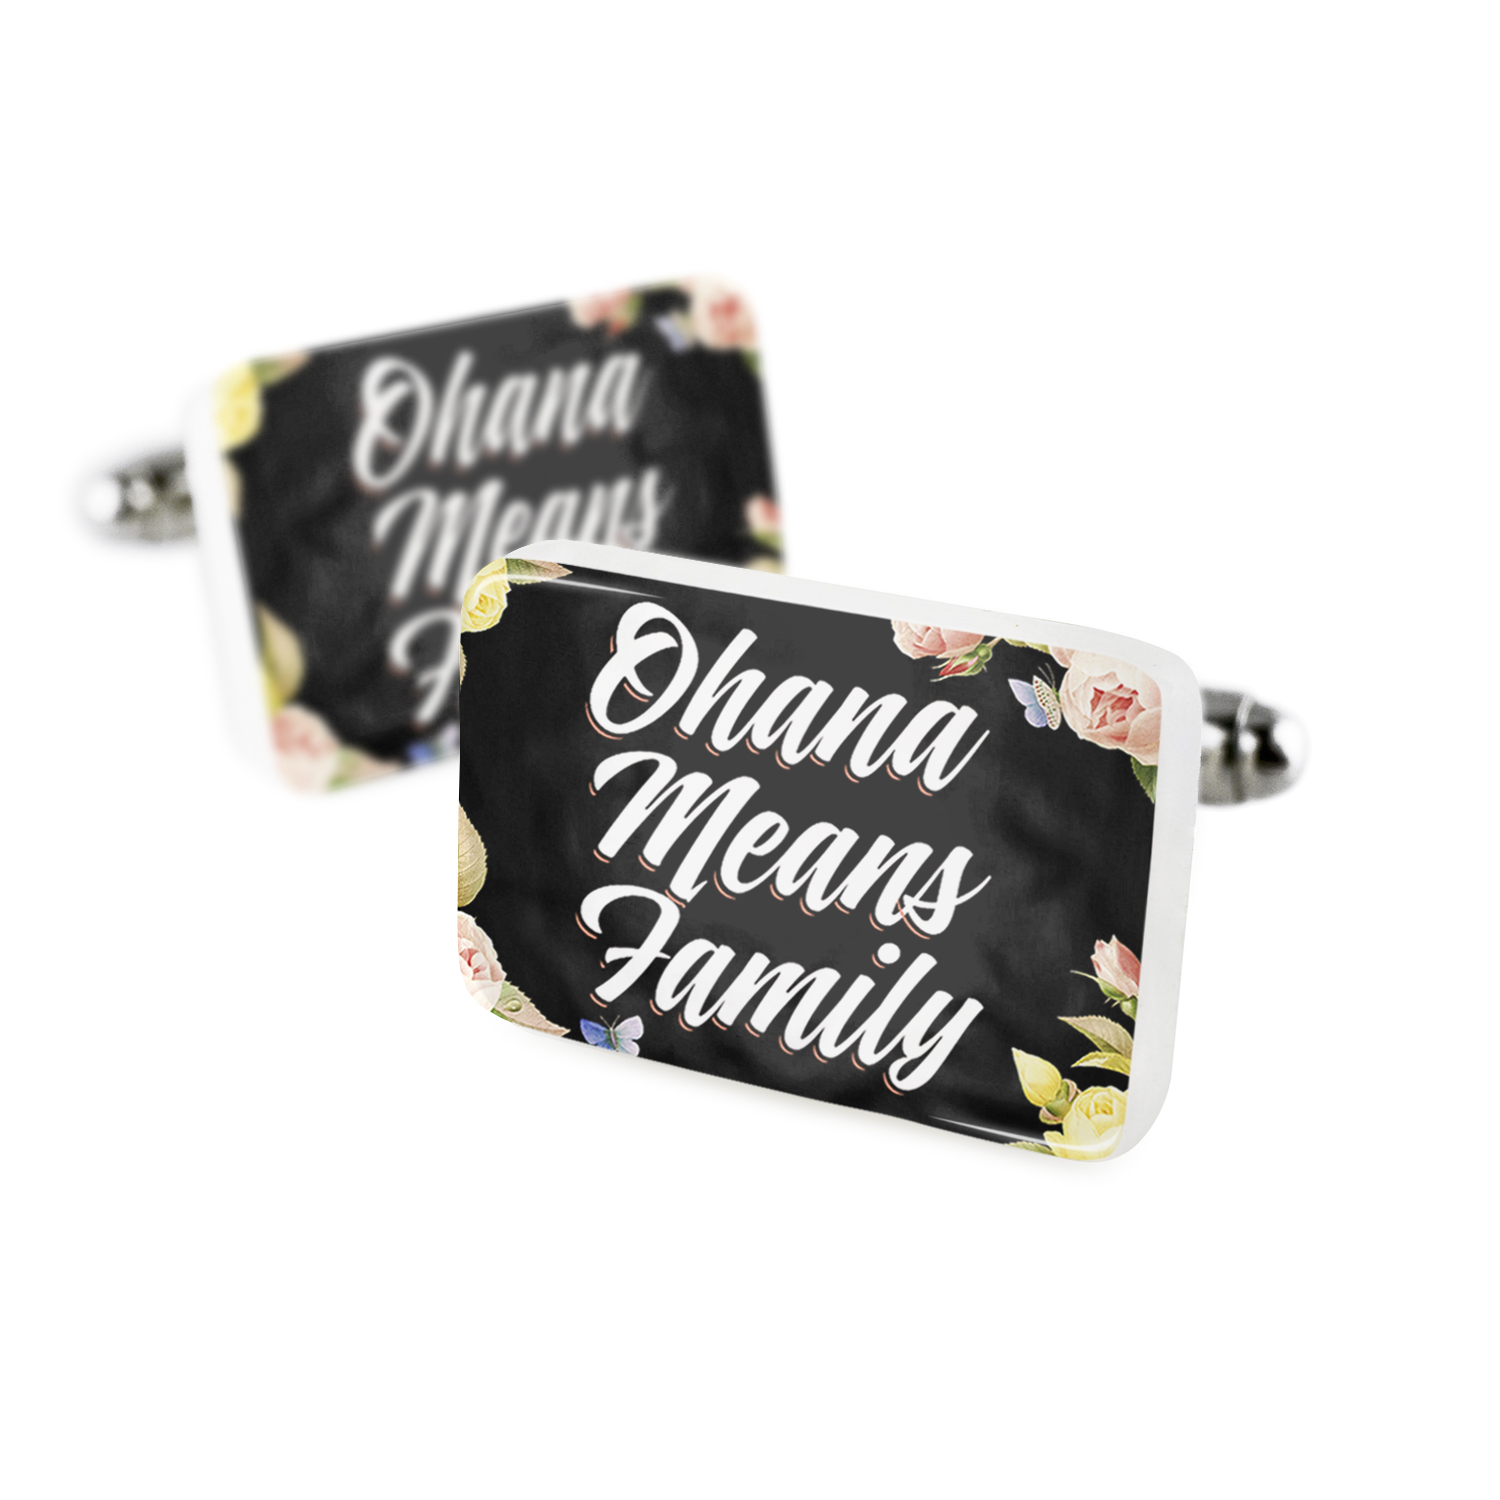 Cufflinks Floral Border Ohana Means Family Porcelain Ceramic NEONBLOND by NEONBLOND